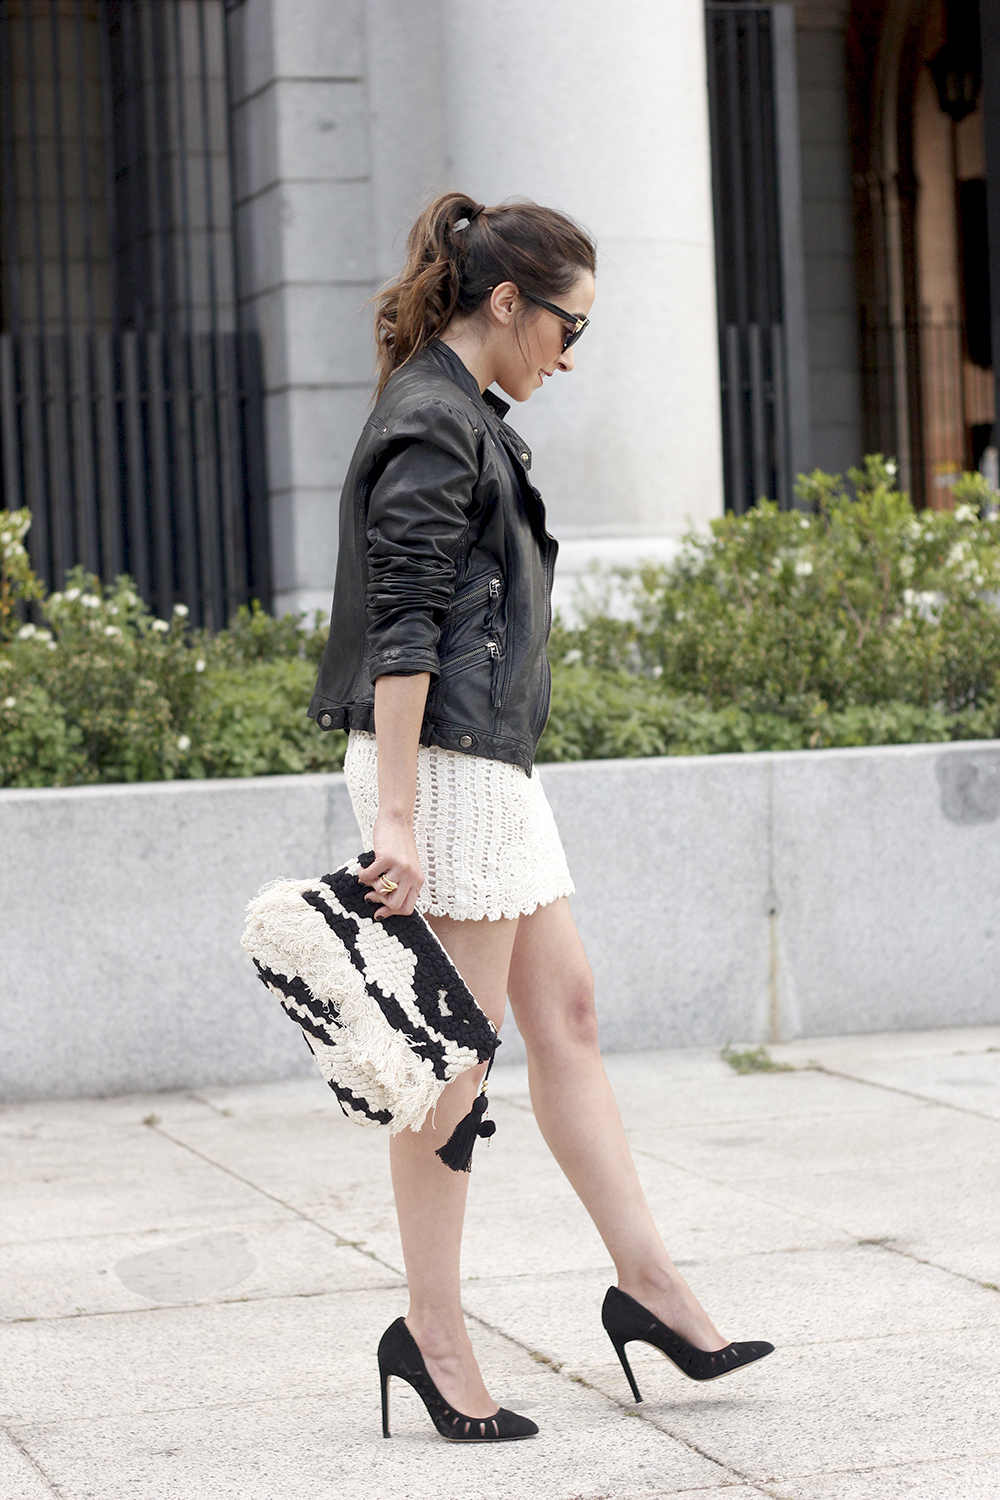 crochet skirt leather jacket black heels sunnies spring outfit style13